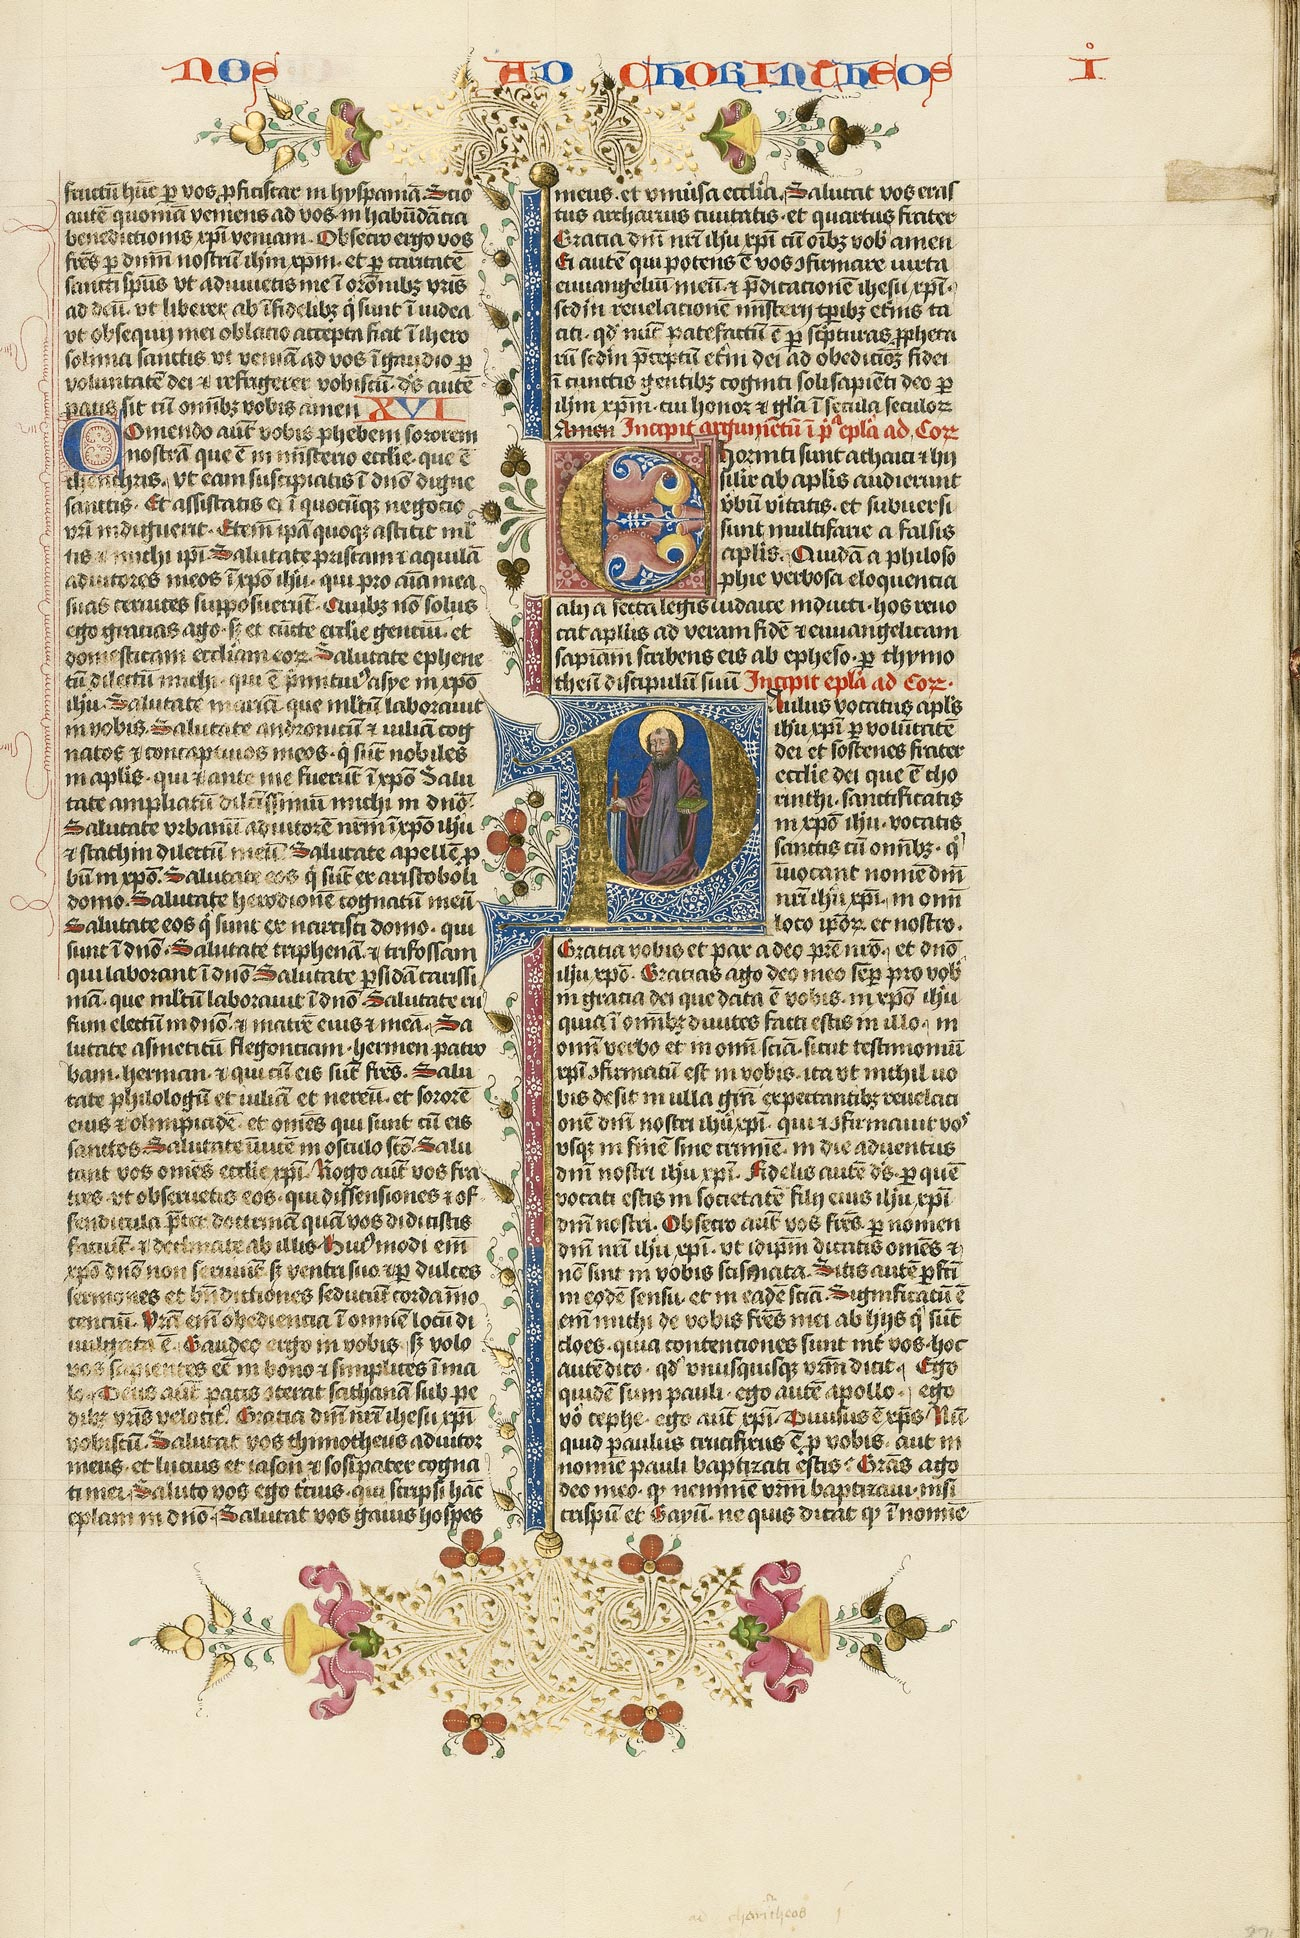 An illuminated manuscript with text in Latin and a large initial P in gold with an illustration of a man holding a sword and a book.